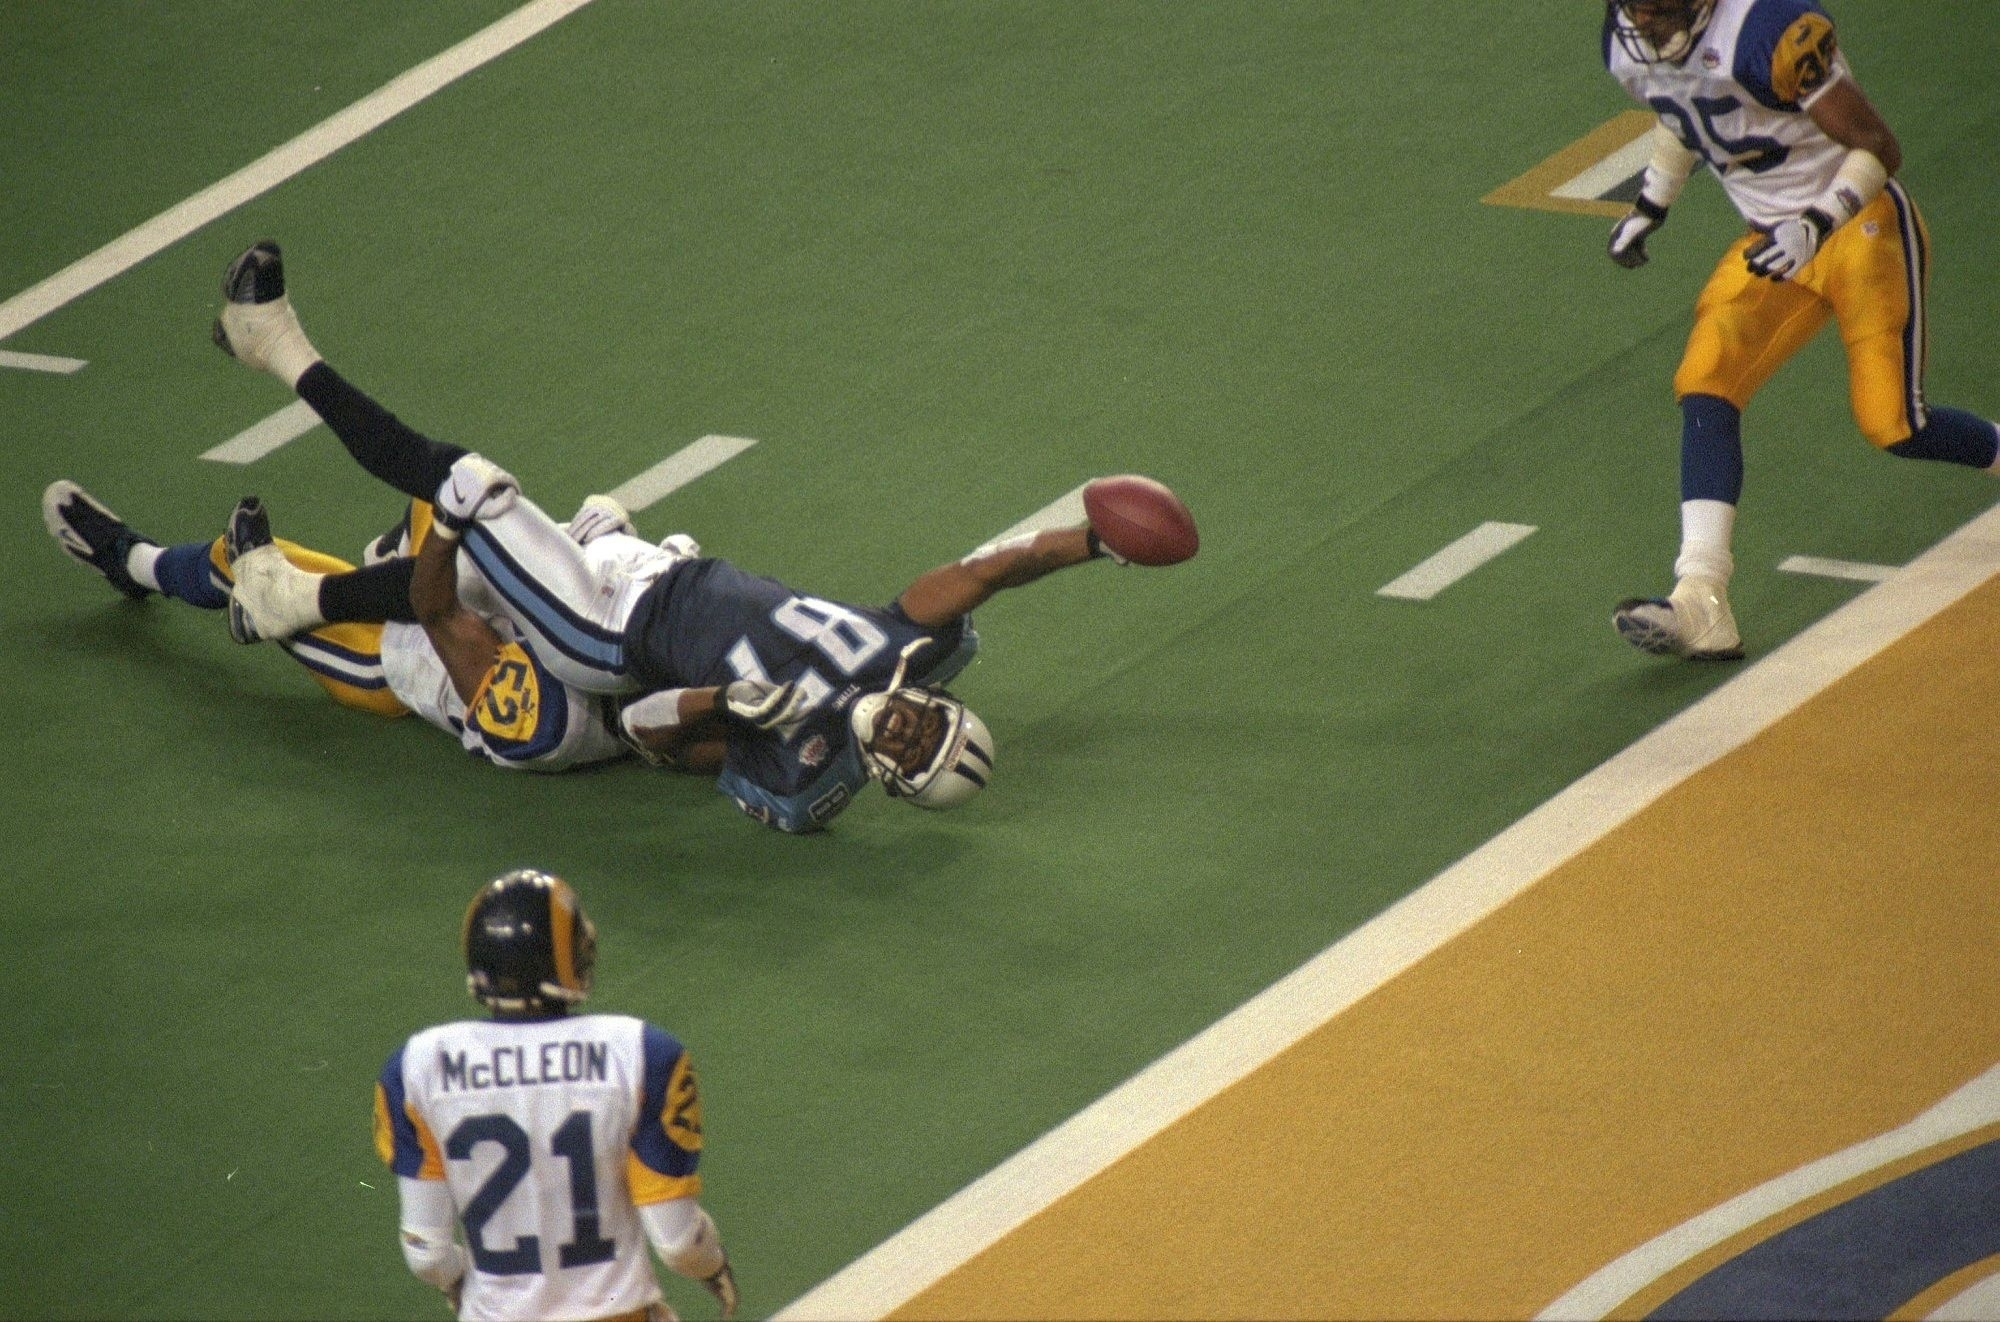 Super Bowl Xxxiv - St. Louis Rams D. Tennessee Titans, 23–16 intended for Tennessee Titans Super Bowl